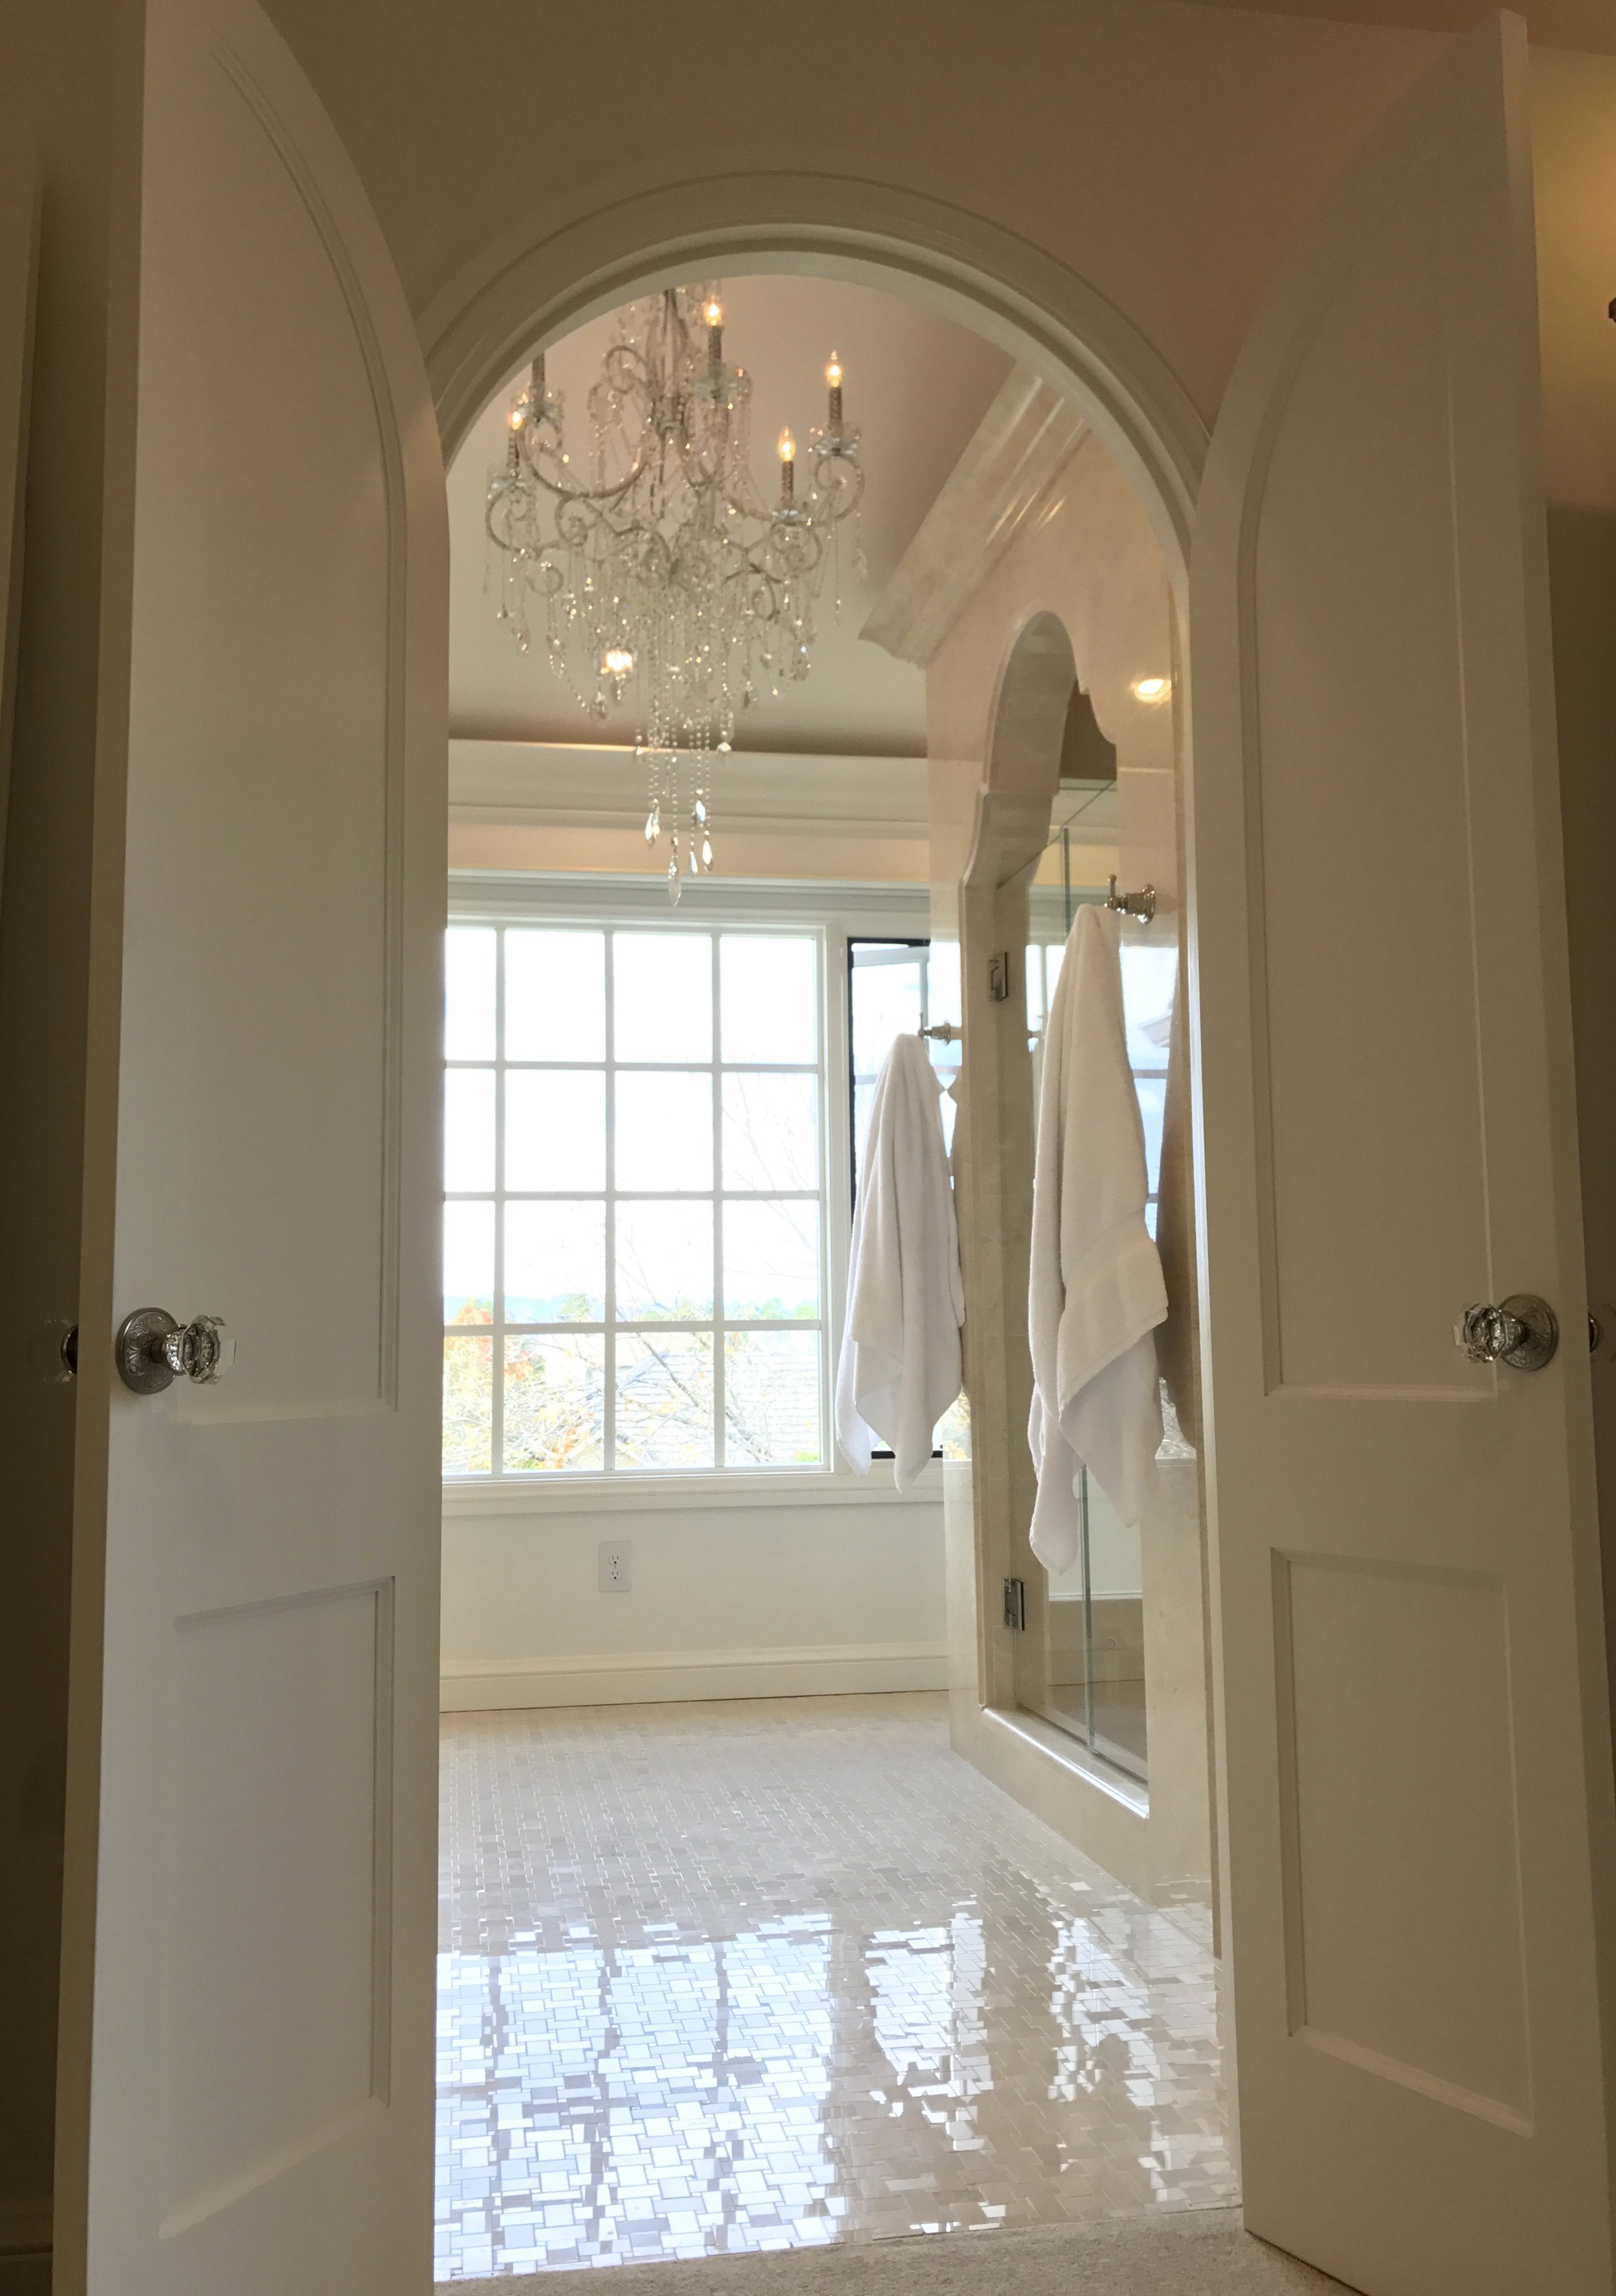 Double doors were installed between the master bedroom and bathroom for noise control and privacy.  The bathroom ceilings were raised  and two stunning Chandi chandeliers fill the space with light. The sparkling marble floor and chandeliers beckon you into this sanctuary.